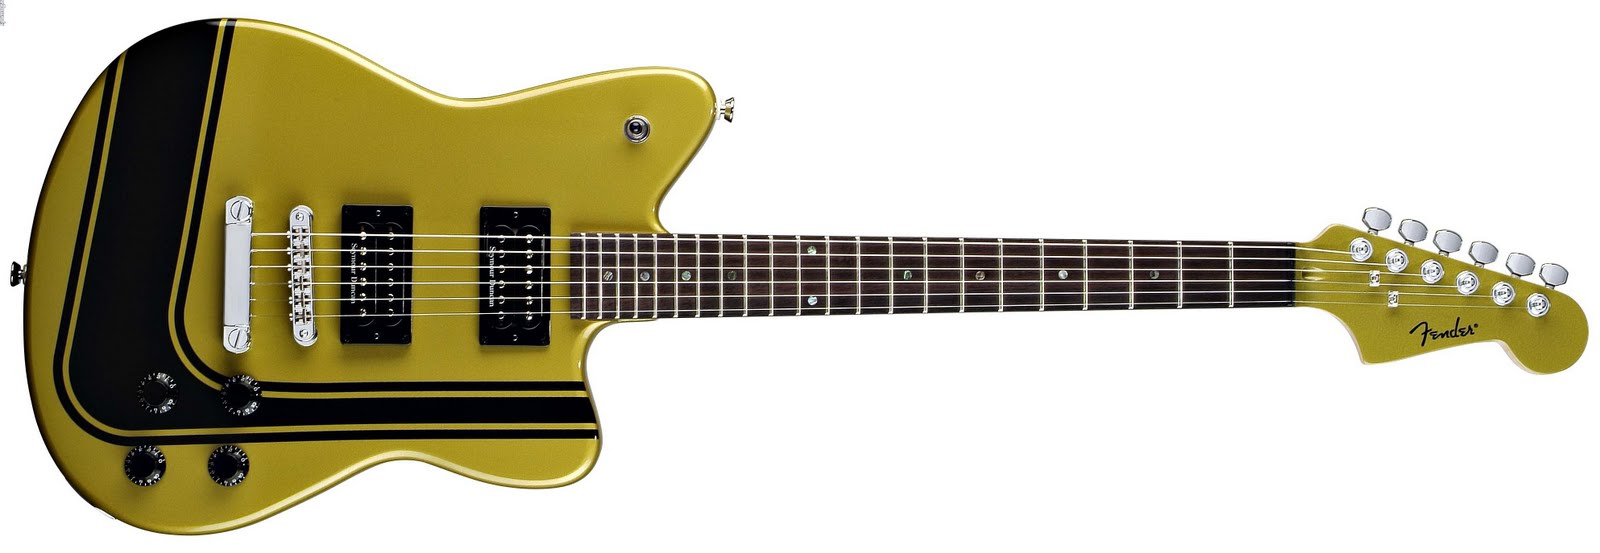 the toronado features two fender atomic humbucking pickups a rosewood fretboard and four chrome knobs 2 volume and 2 tone many models also include a  [ 1600 x 553 Pixel ]